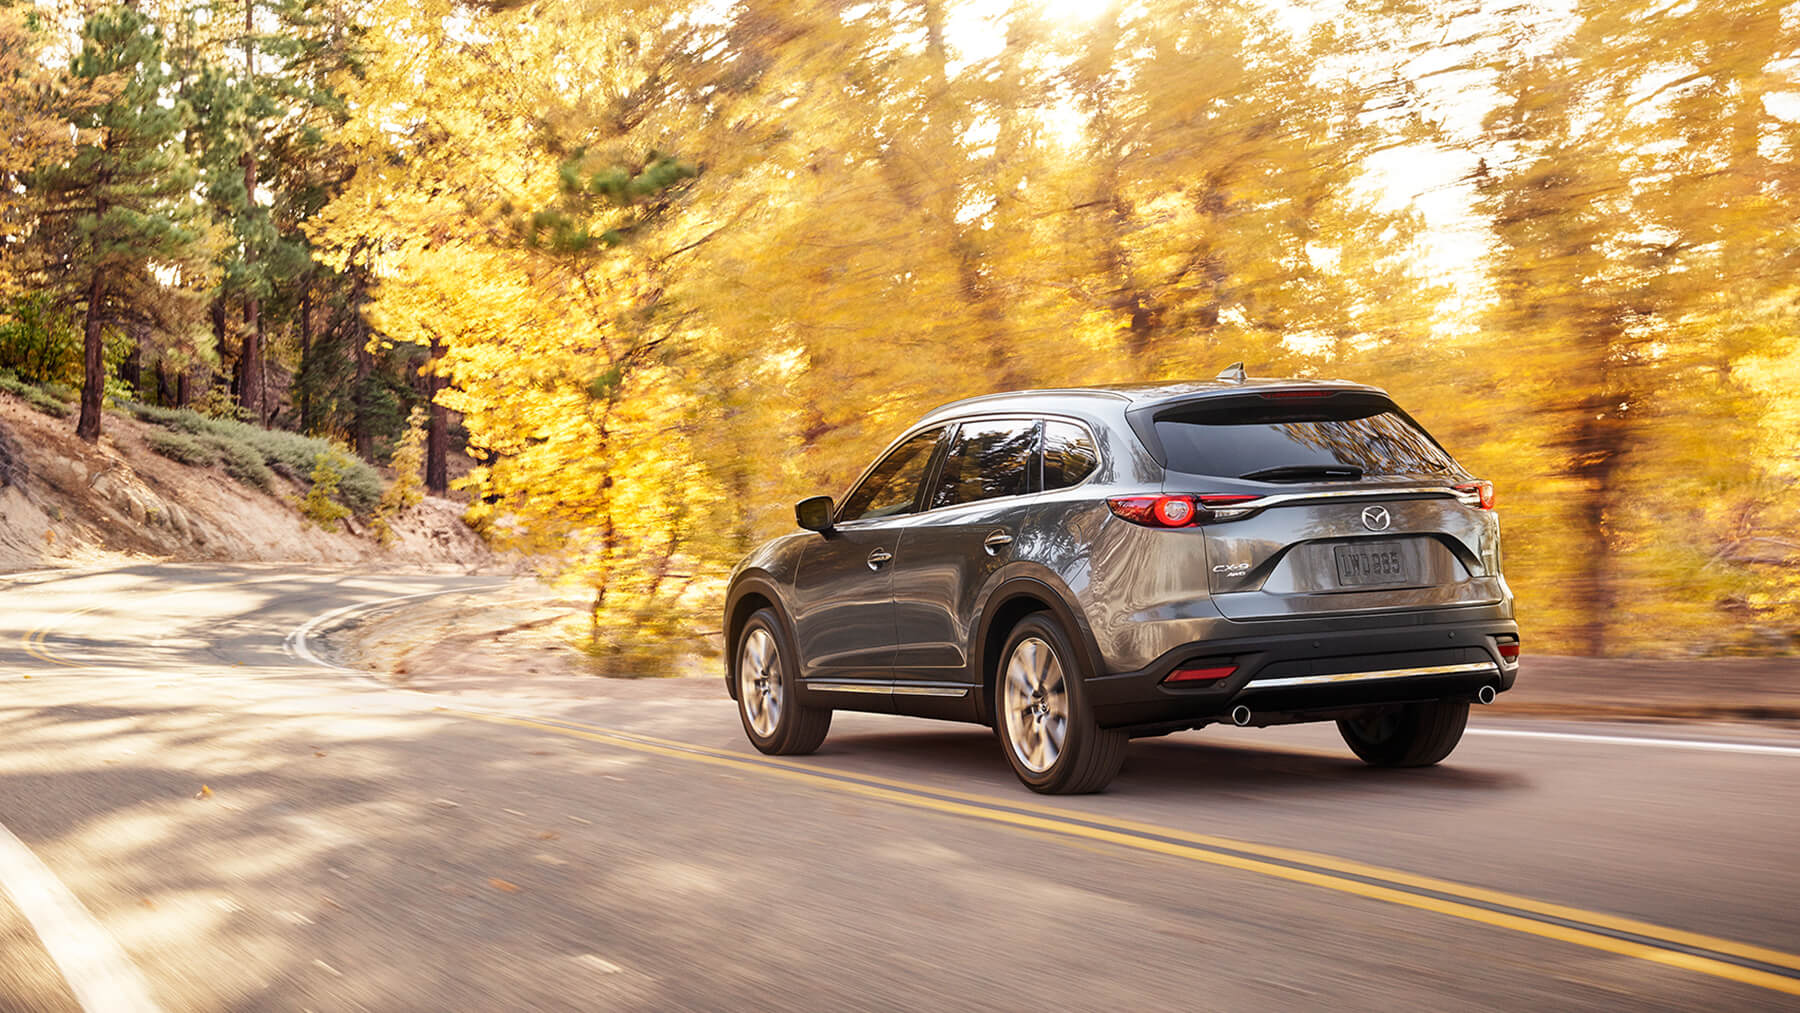 2016-cx9-machine-grey-driving-woods-mde-cx9-gallery